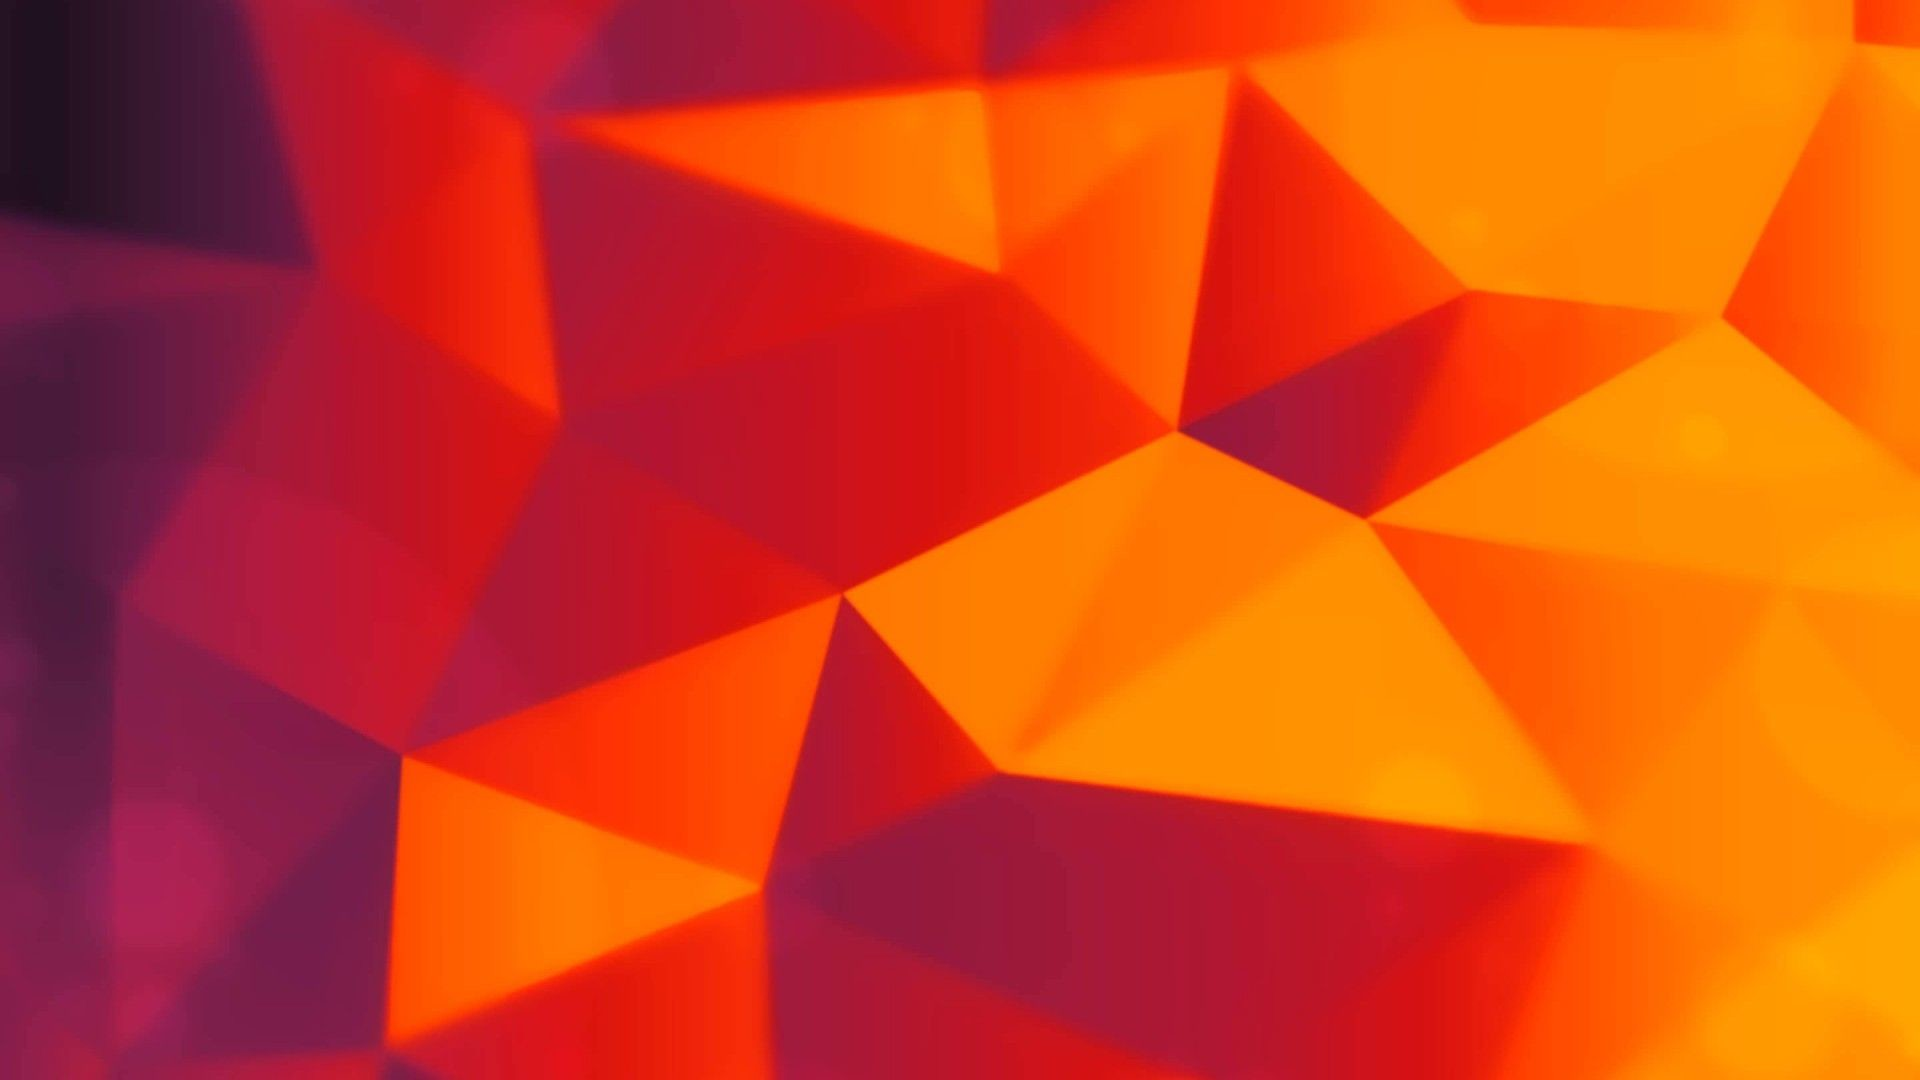 1920x1080 Orange Polygons #Abstract #Abstraction #Orange #Polygons #wallpaper # desktopwallpaper #hdwallpaper #abstract #abstractwallpaper